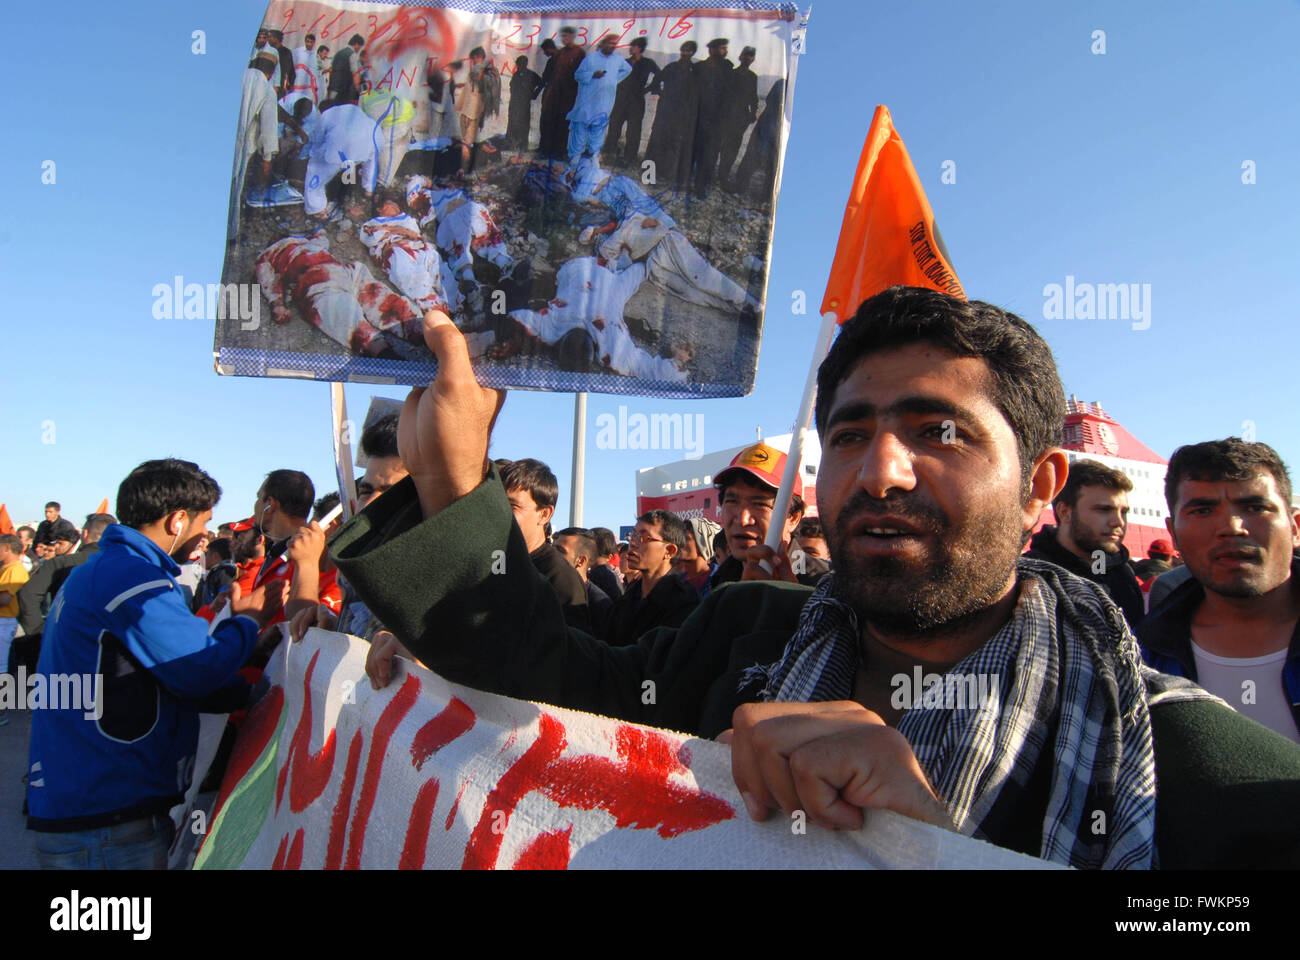 Refugee camp in Pireus Port. Demonstration against EU-Turckey agreement and request to open the borders with Makedonia.. - Stock Image